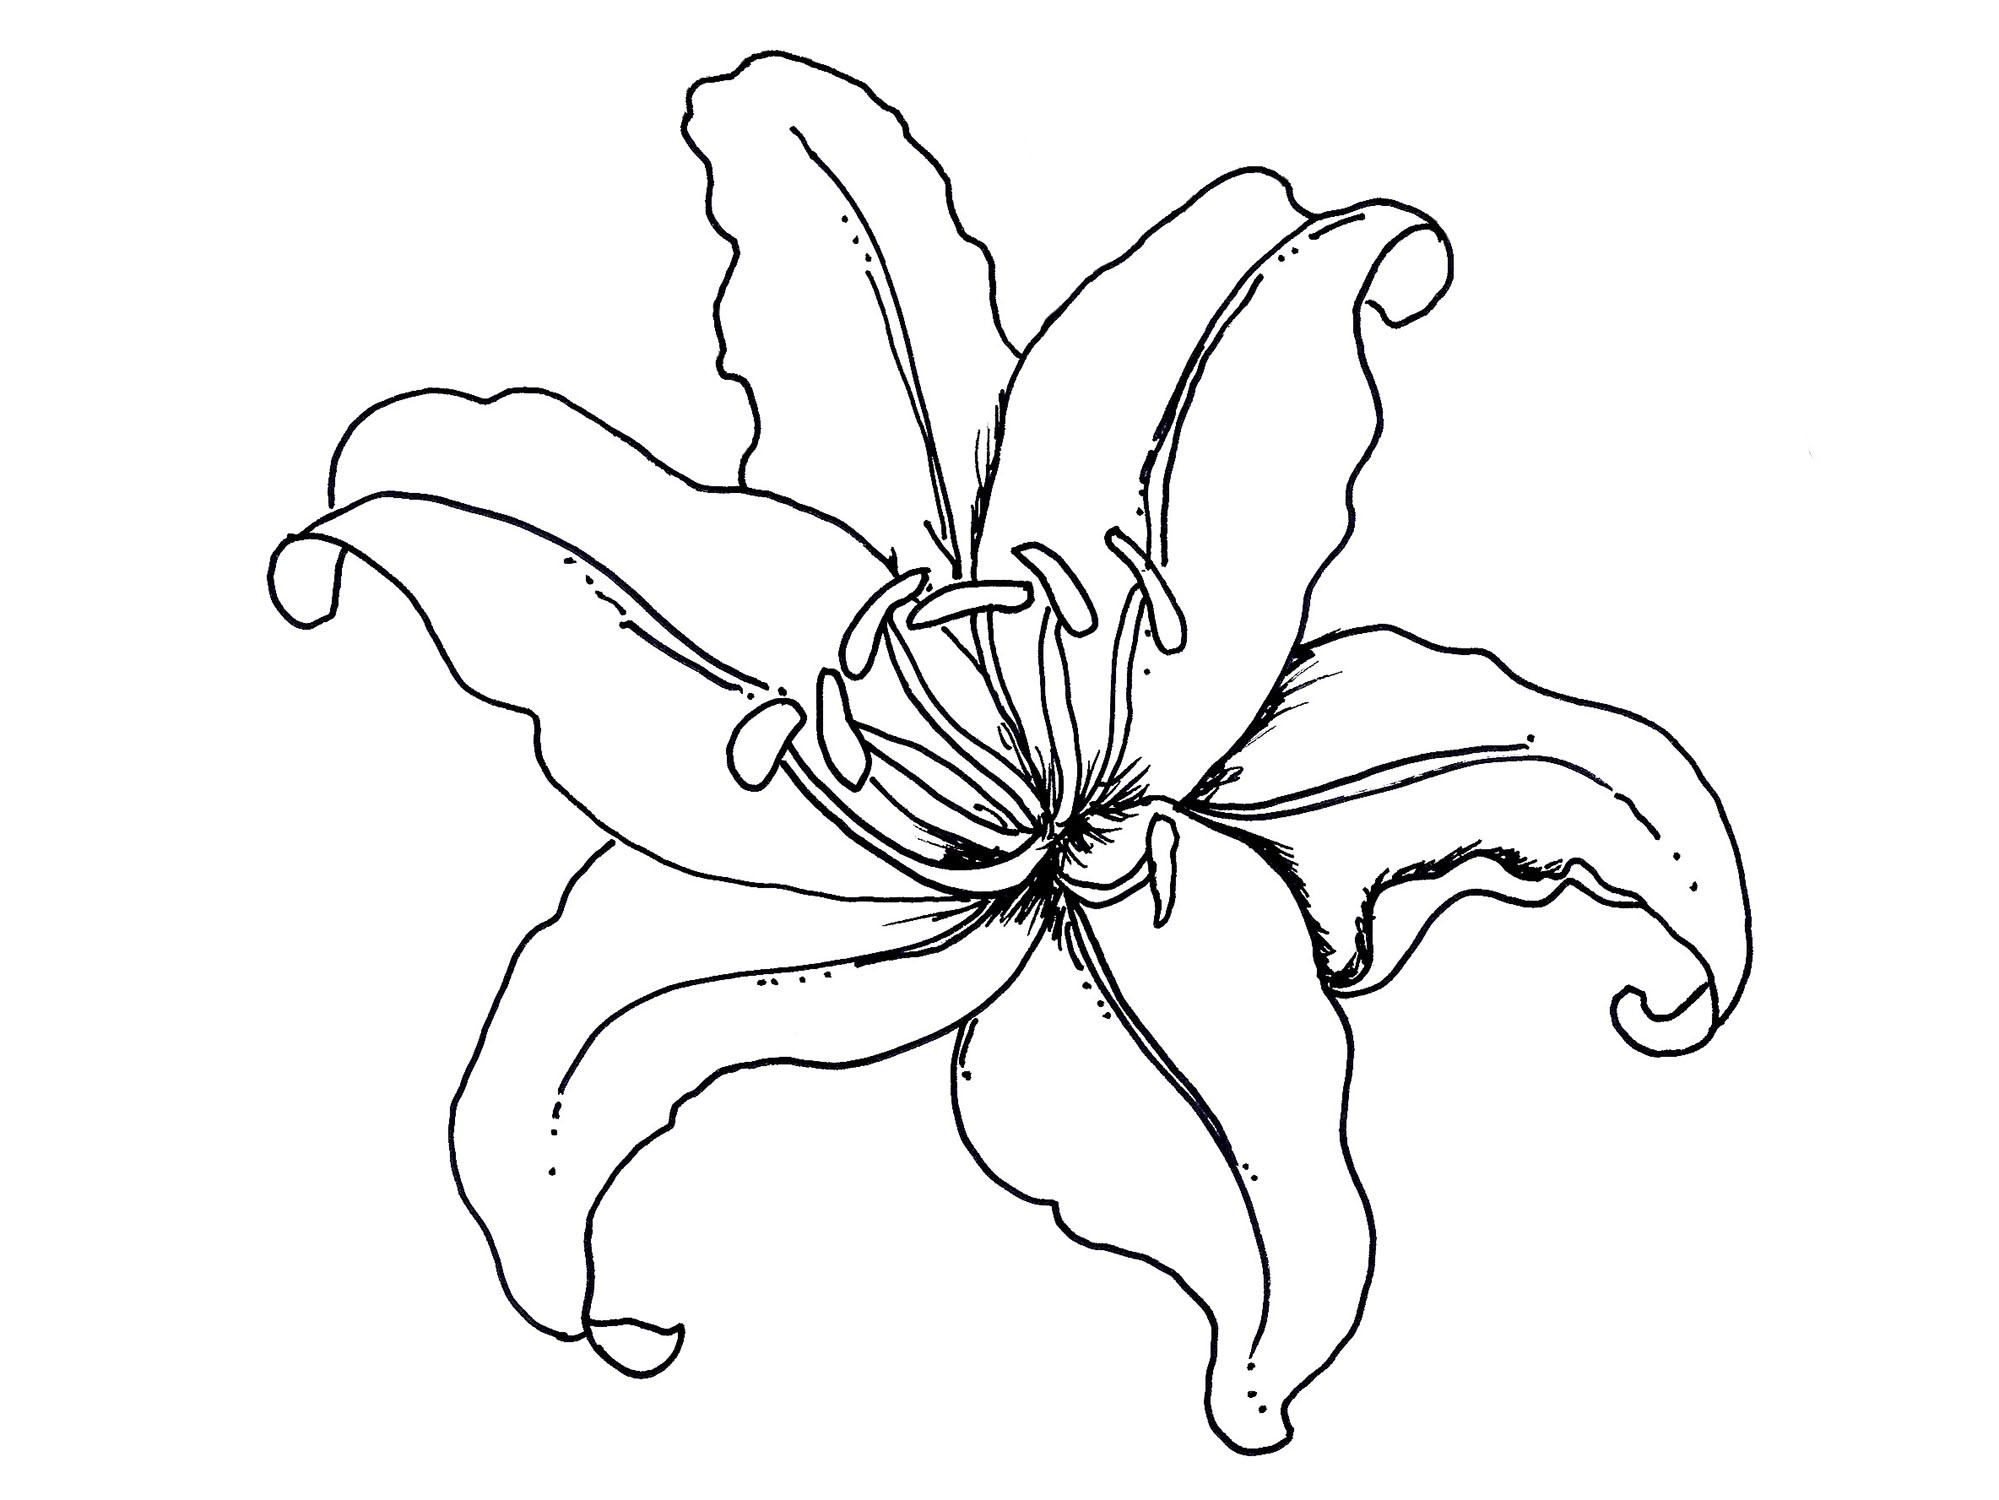 1999x1500 Lilium Flower Coloring Pages For Kids Lovely Clipart Lily Pad